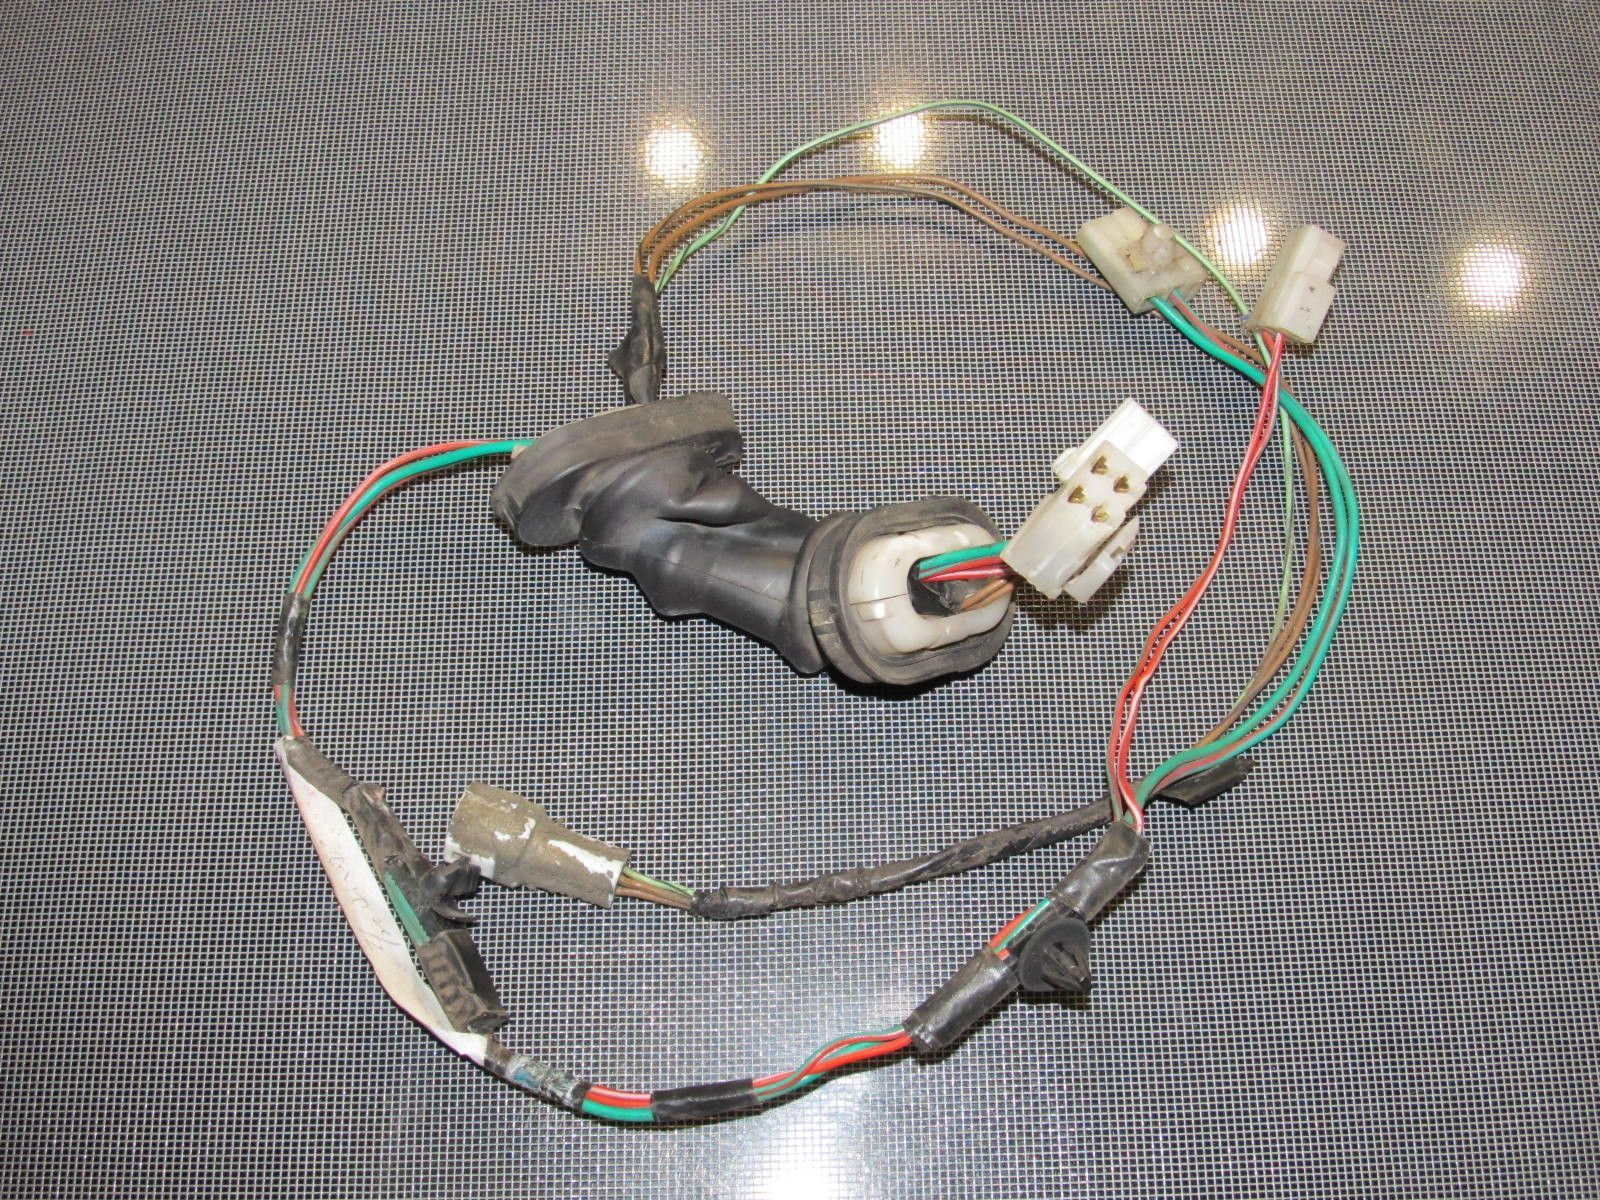 f488122a081fbb18e48bc9ea57b83783 90 93 miata oem door wiring harness left products door wiring harness at aneh.co